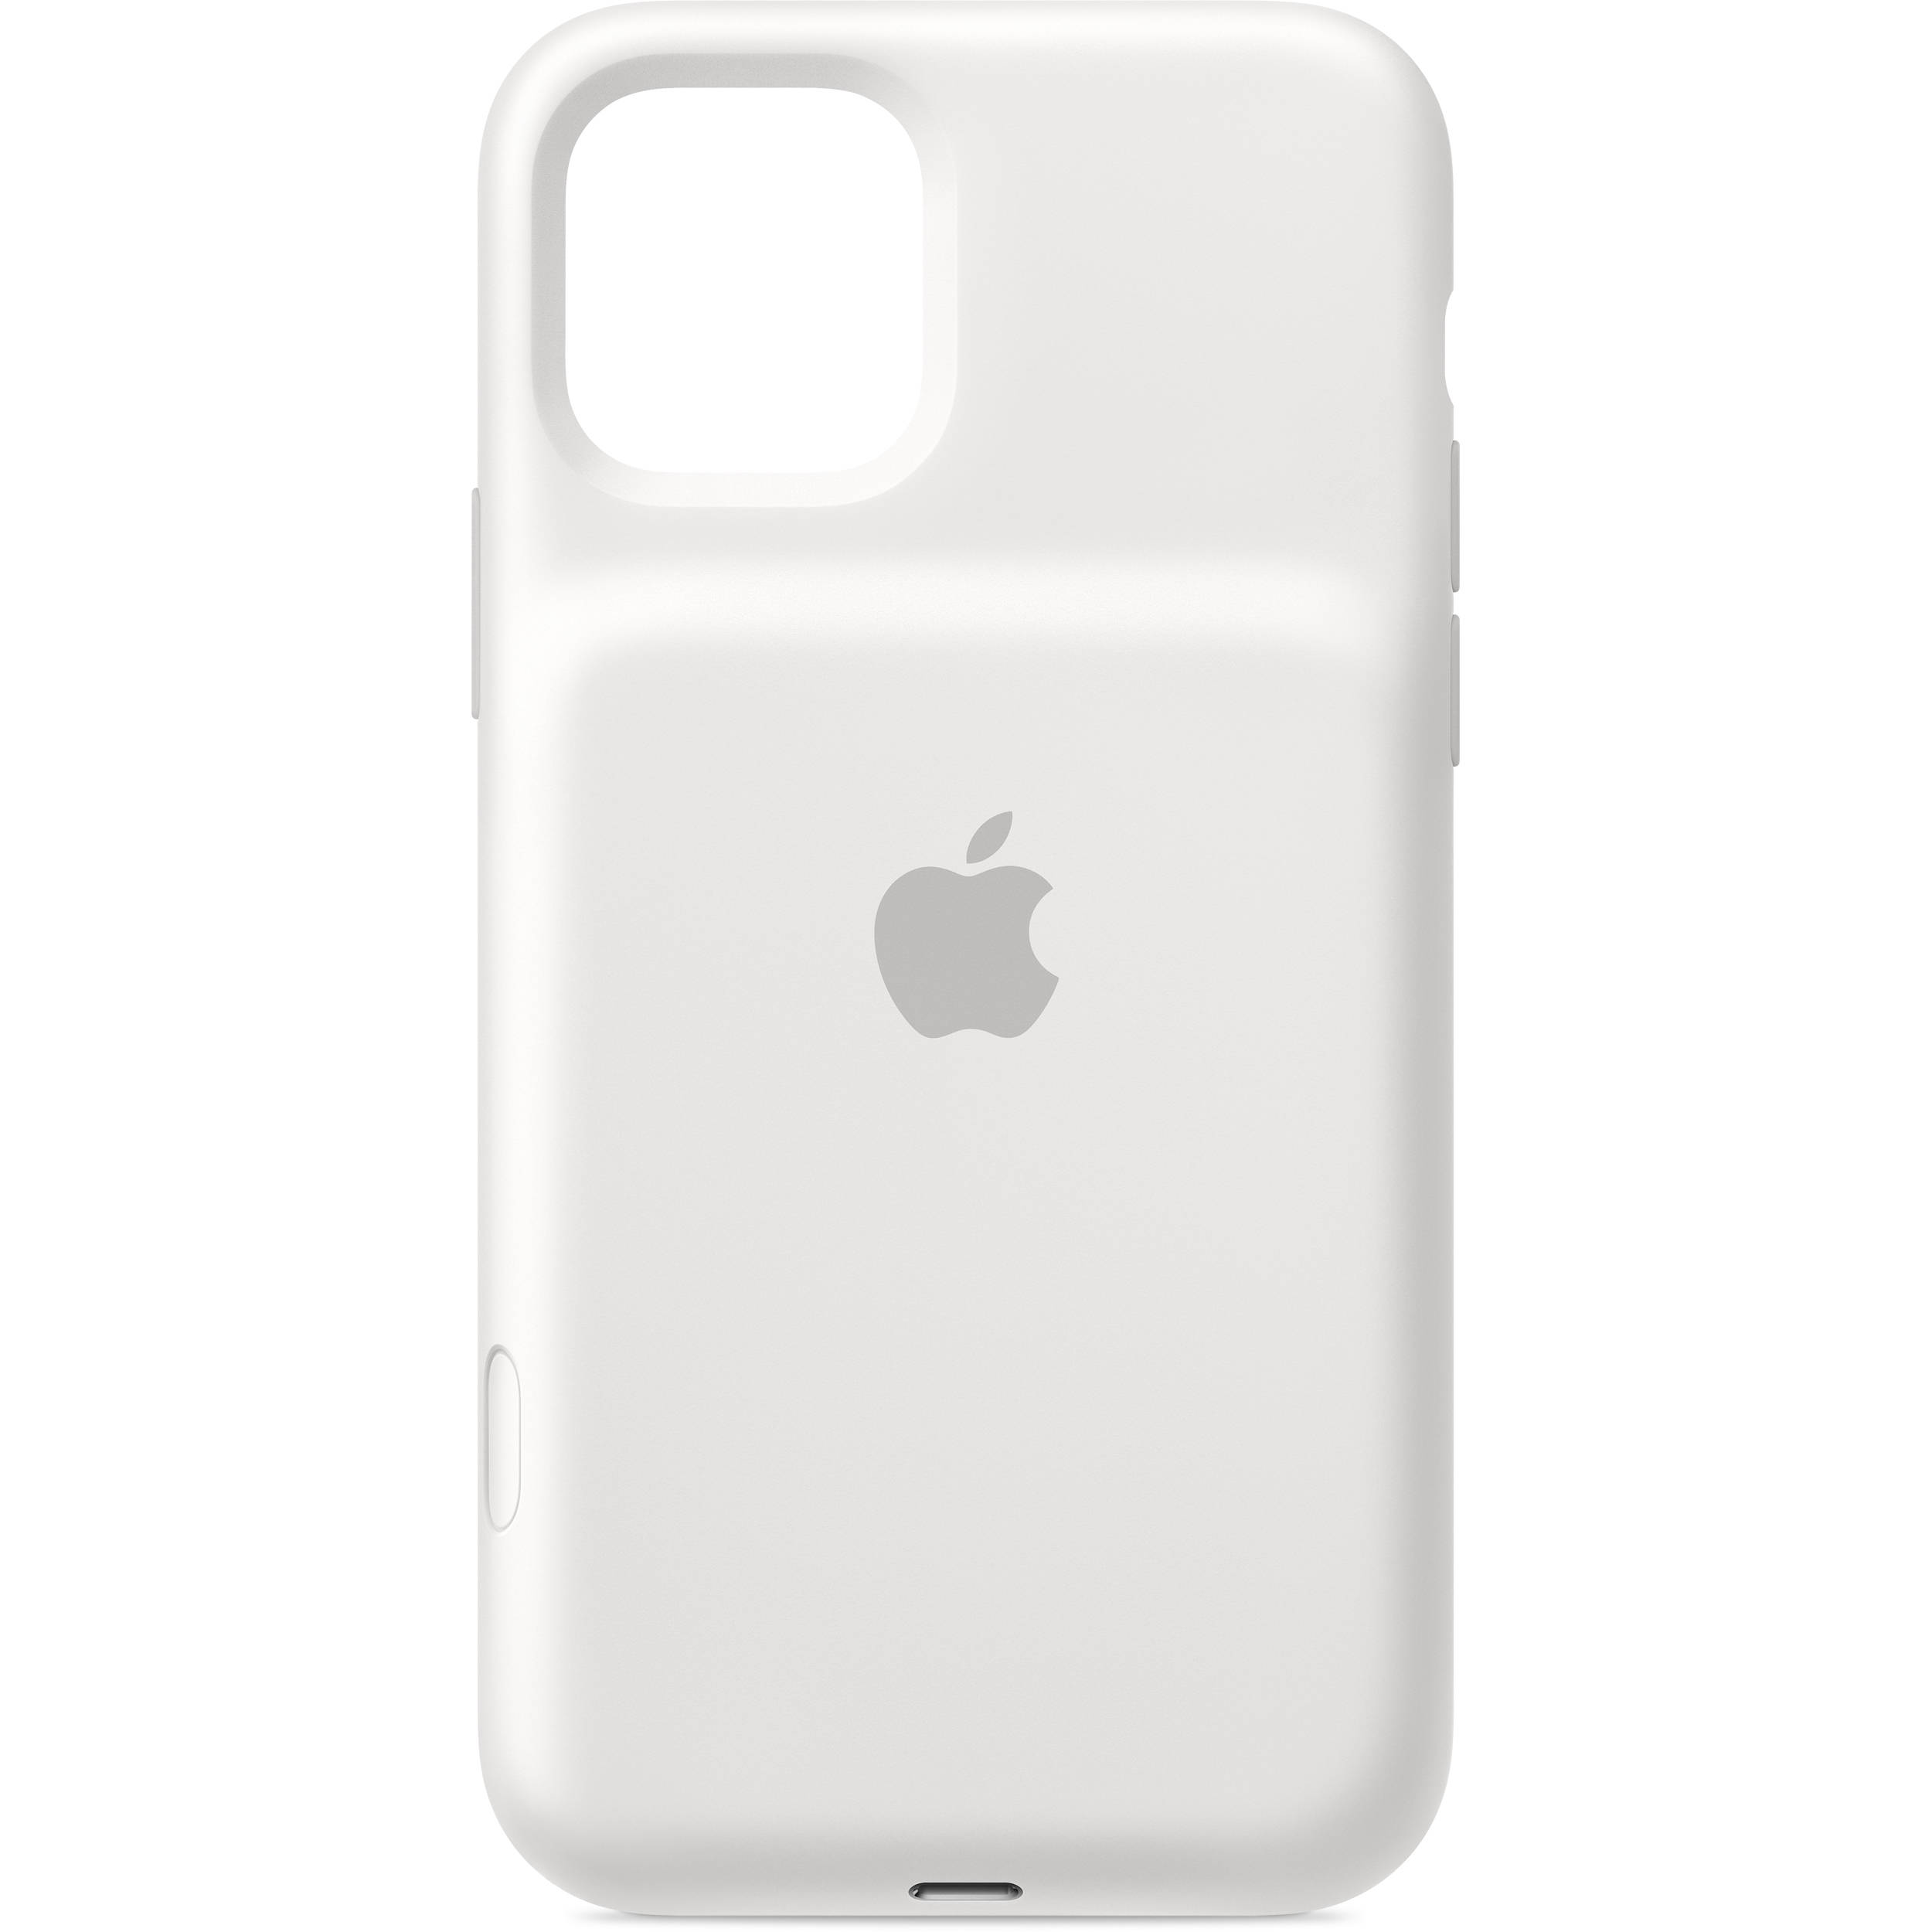 Apple Smart Battery Case with Wireless Charging White for iPhone 11